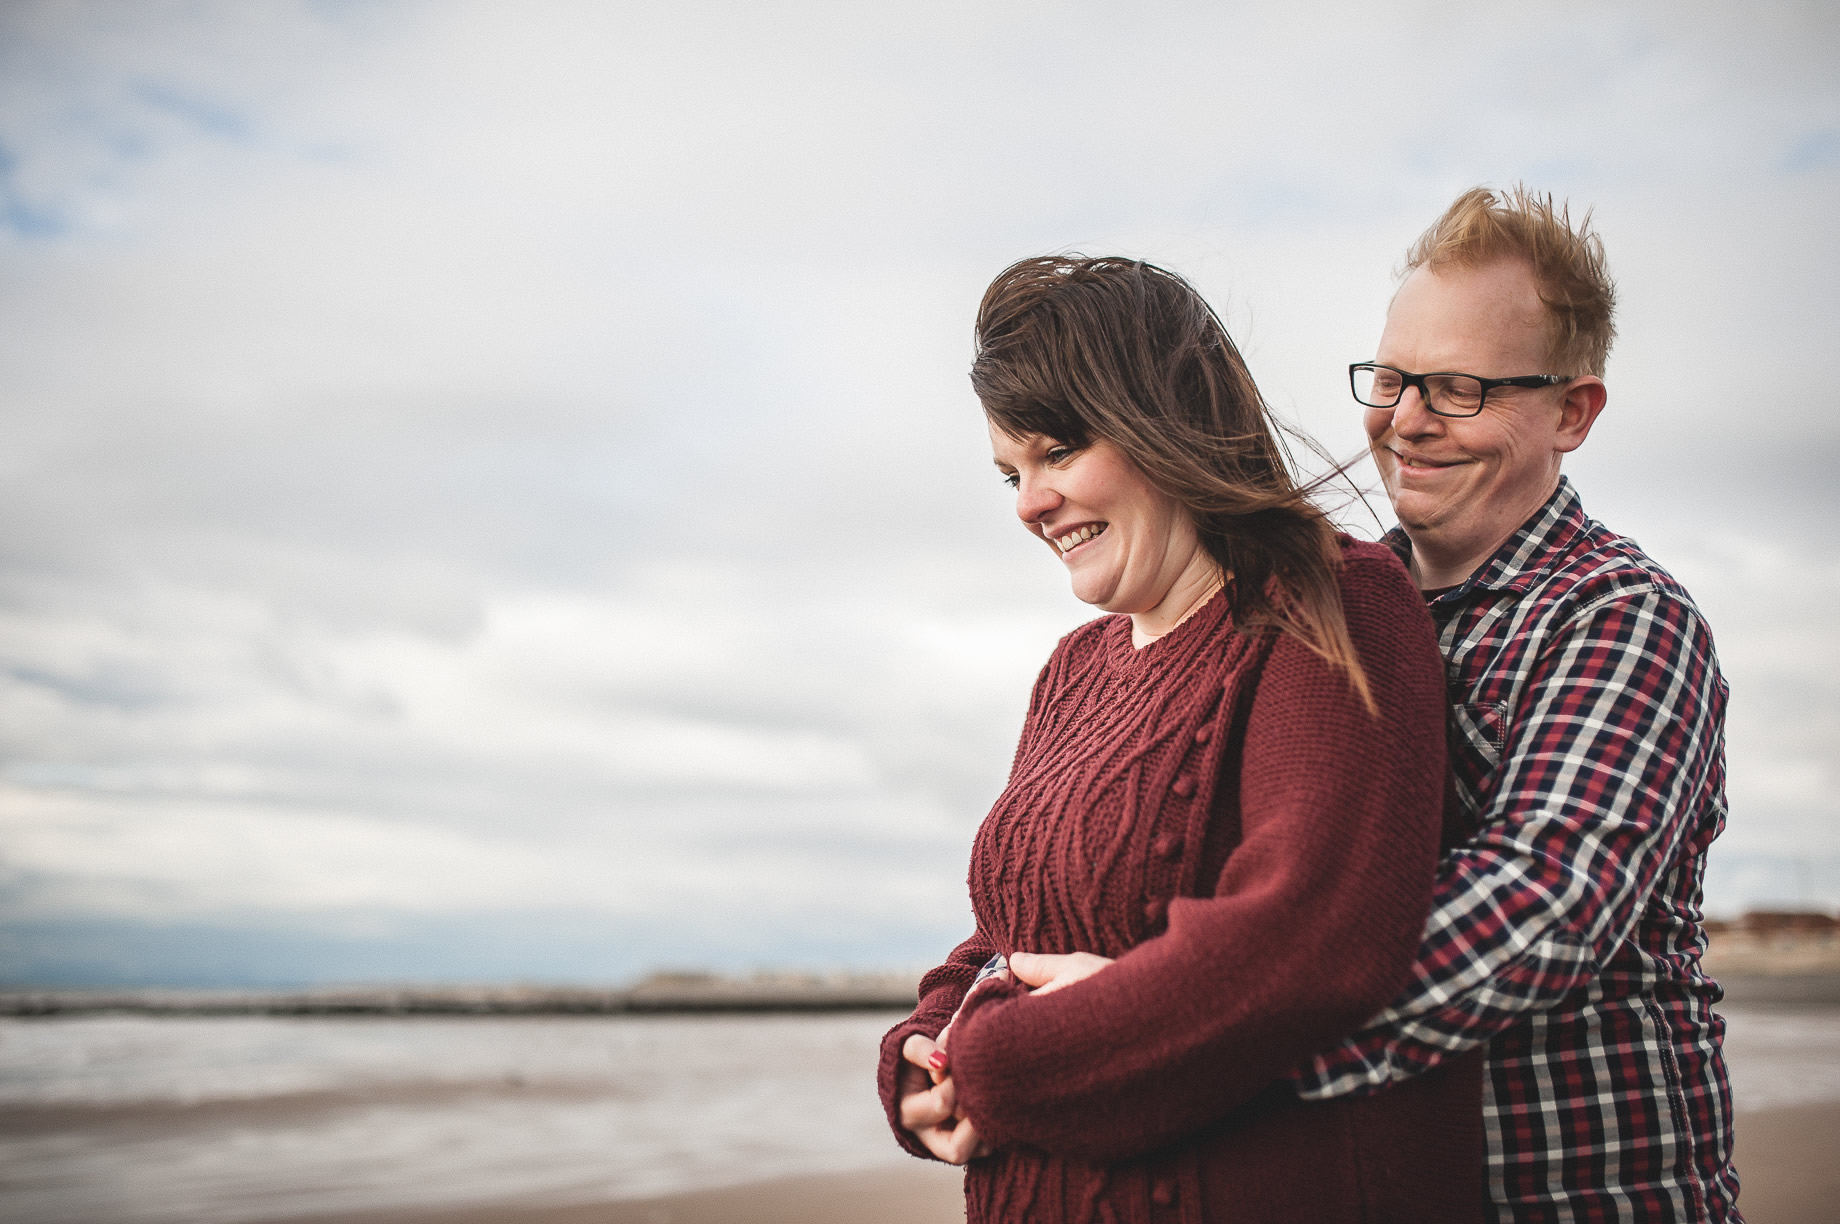 Laura and Graham Portrait Shoot on Cleveleys Promenade 016